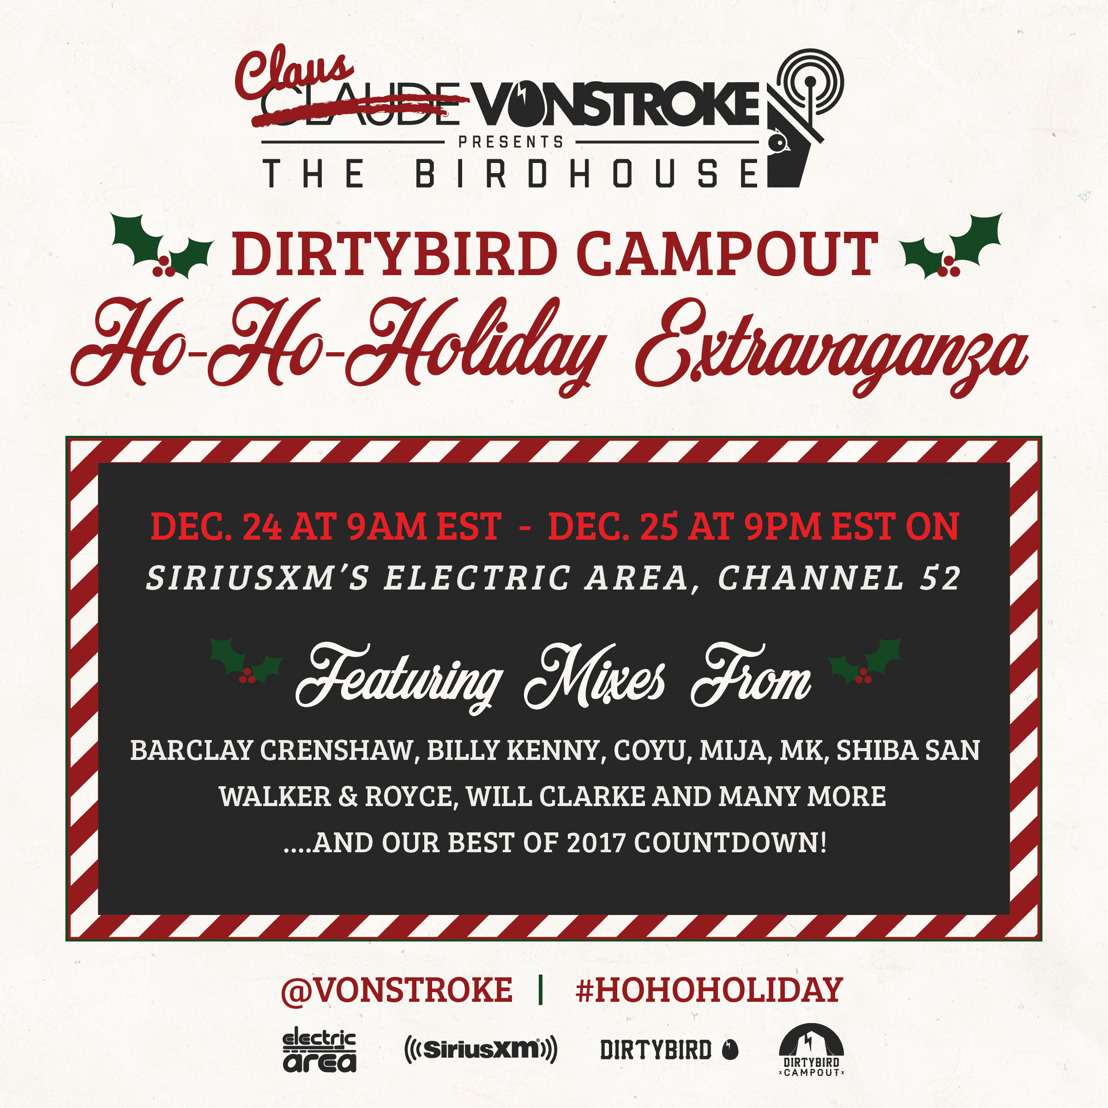 Claus VonStroke's Birdhouse Presents DIRTYBIRD Campout's Ho-Ho-Holiday Extravaganza On SiriusXM's Electric Area (CH 52) Dec 24- Dec 26th + DBC East Activities Announced